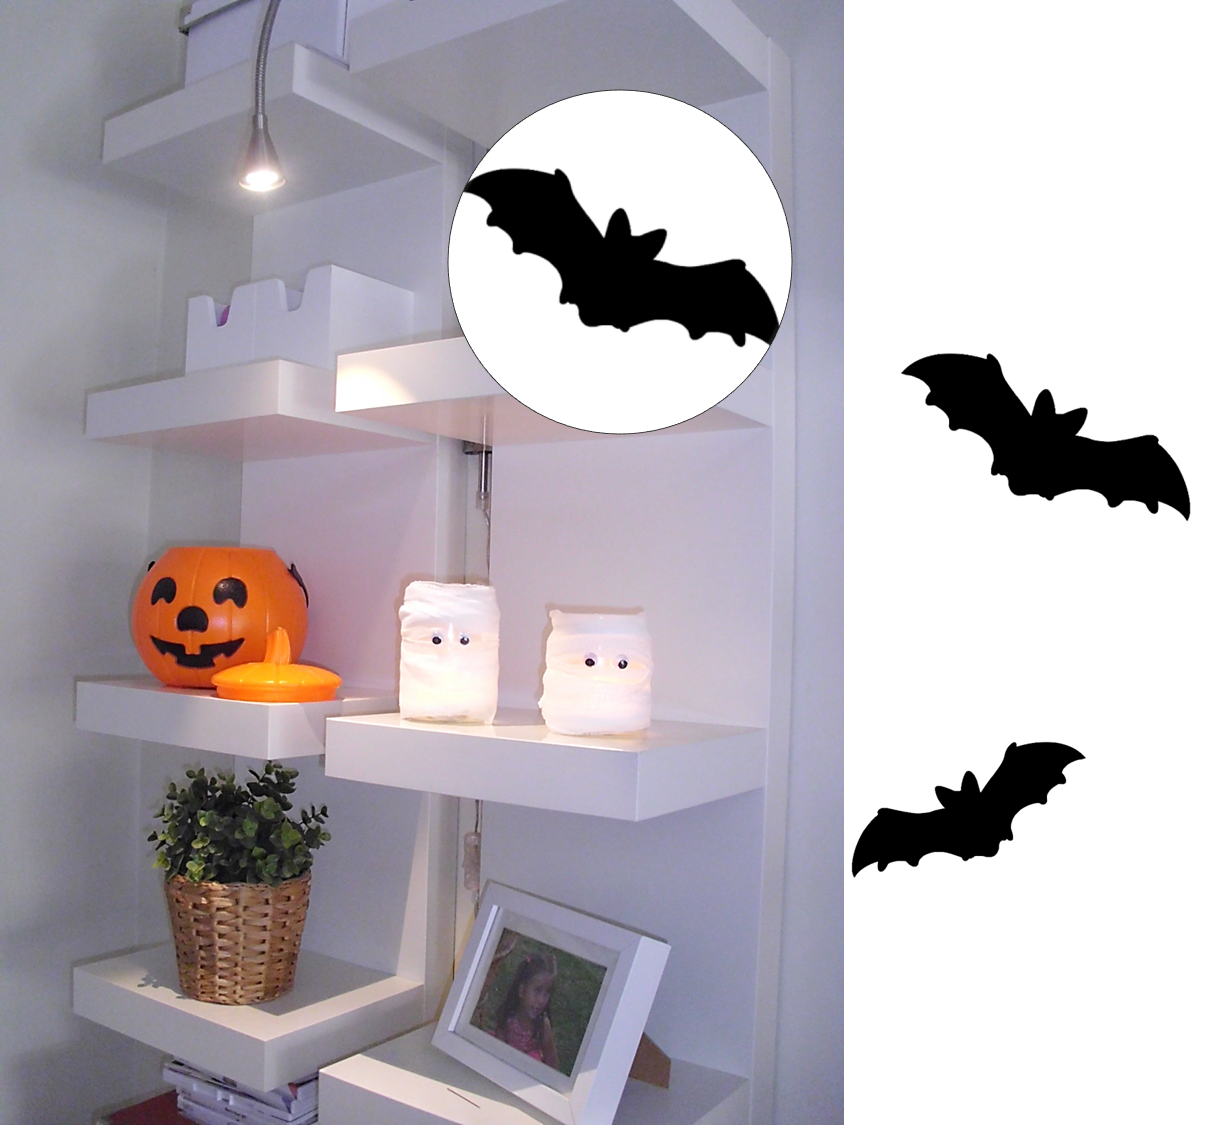 Diy Decoracion Halloween ~ Decoraci?n F?cil DIY PARA #HALLOWEEN EN DOS MINUTOS